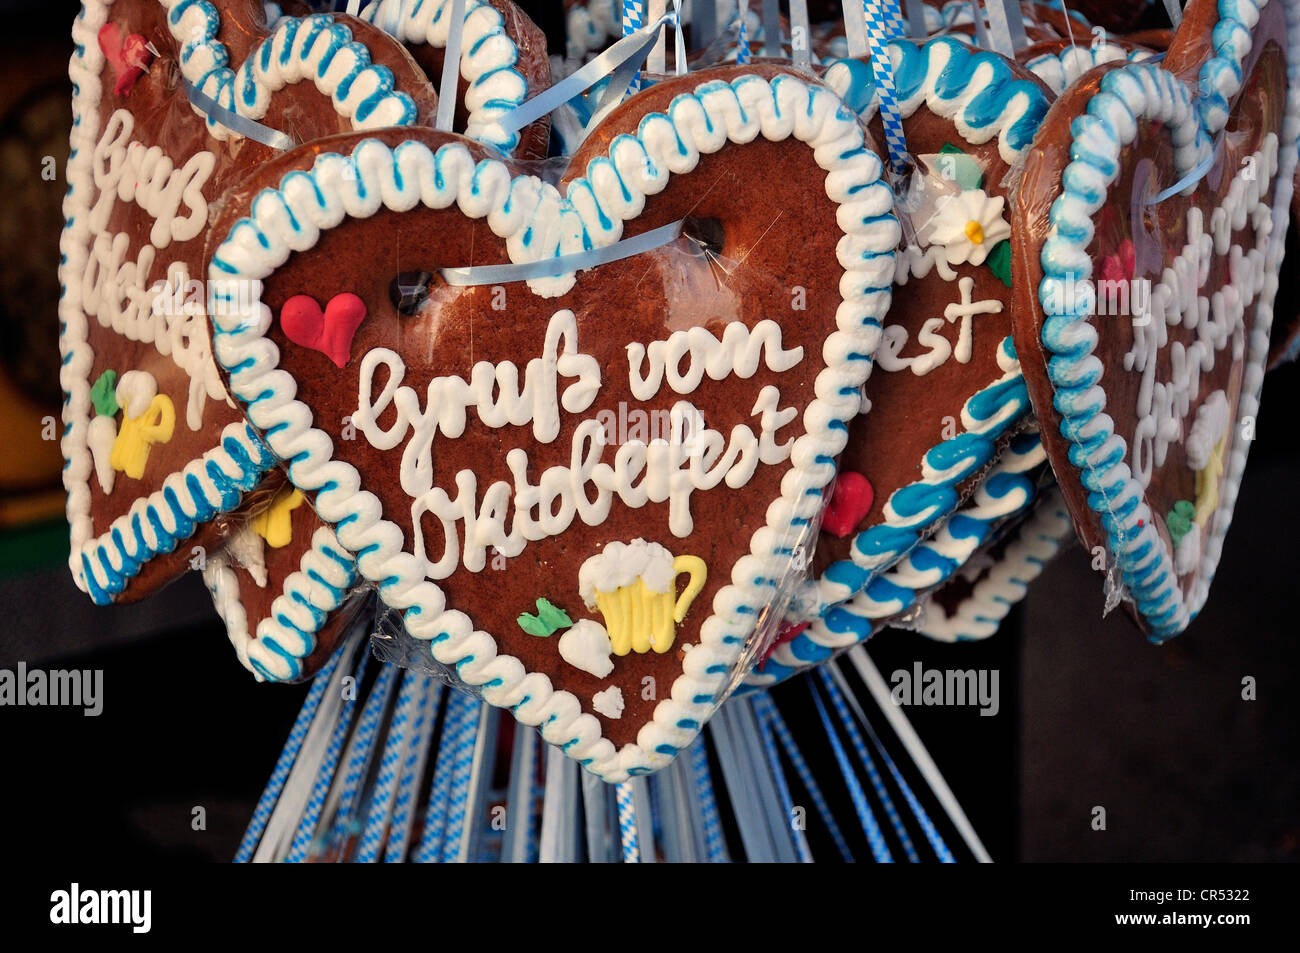 Greetings From Munich Oktoberfest Stock Photos Greetings From